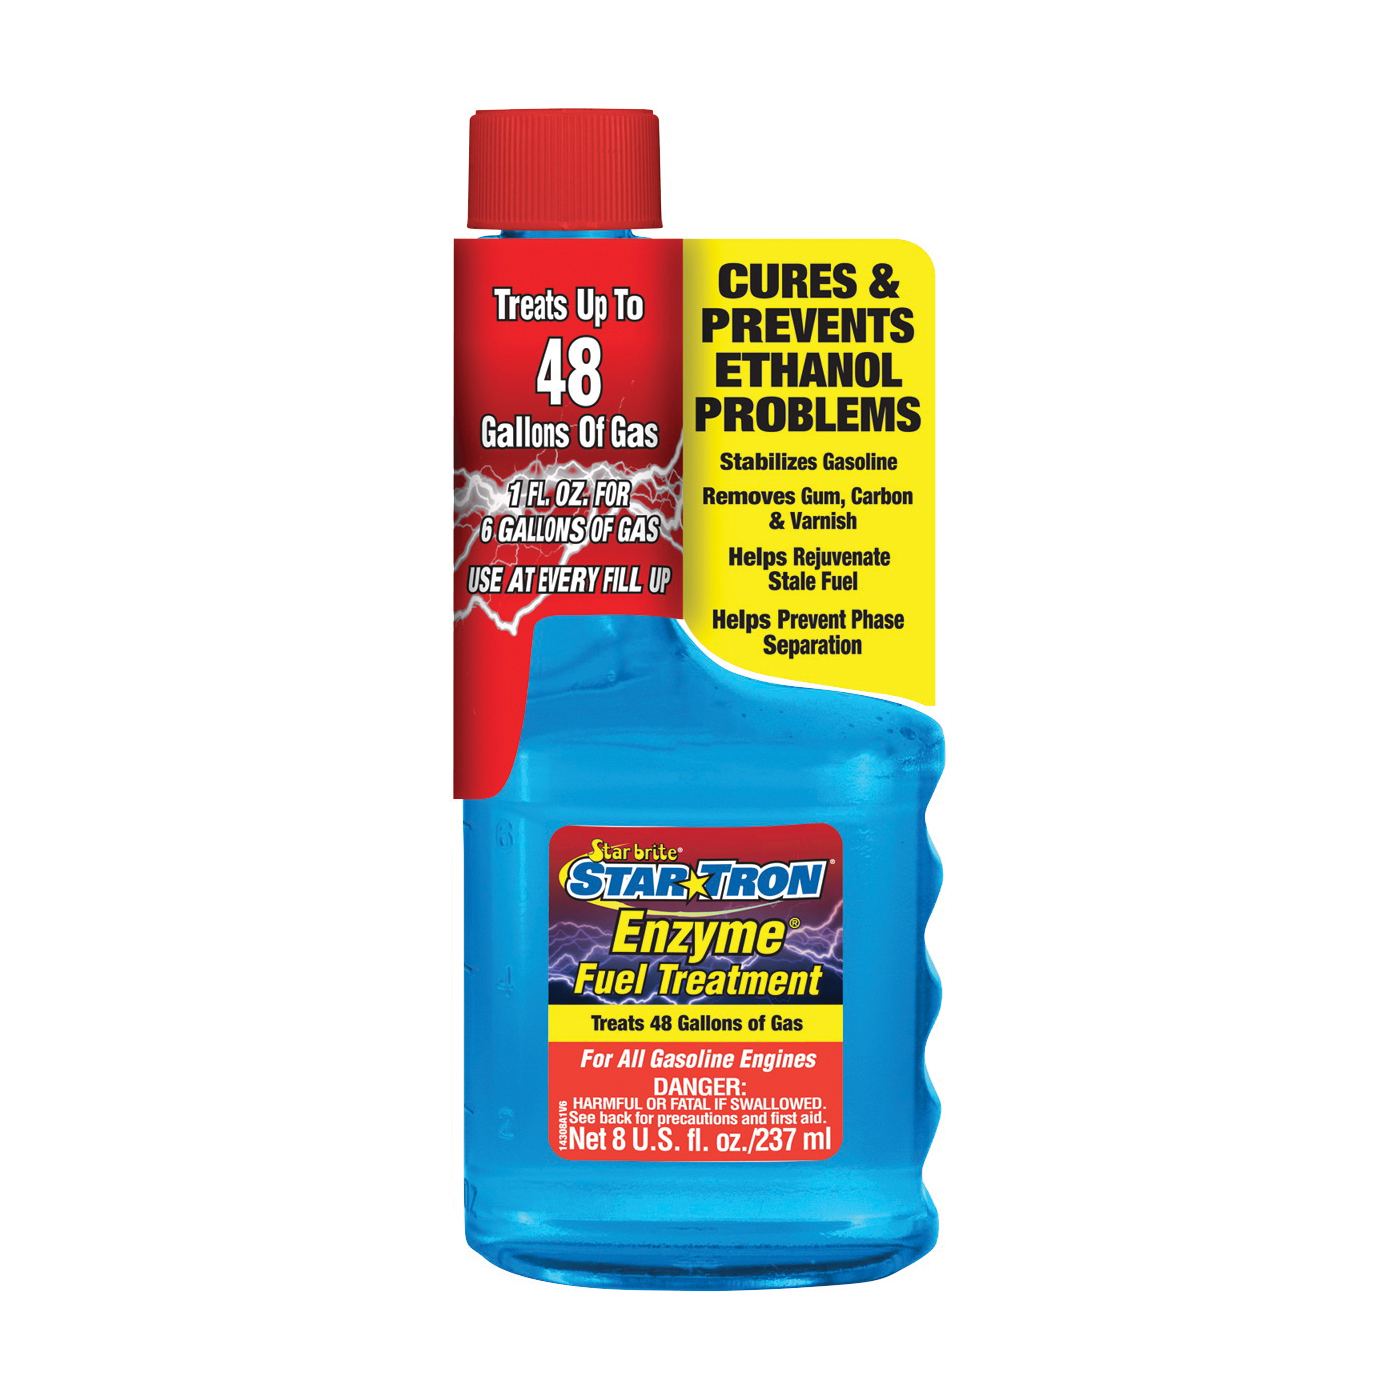 Picture of Star brite Star Tron 14308 Enzyme Fuel Treatment Clear, 8 oz Package, Bottle